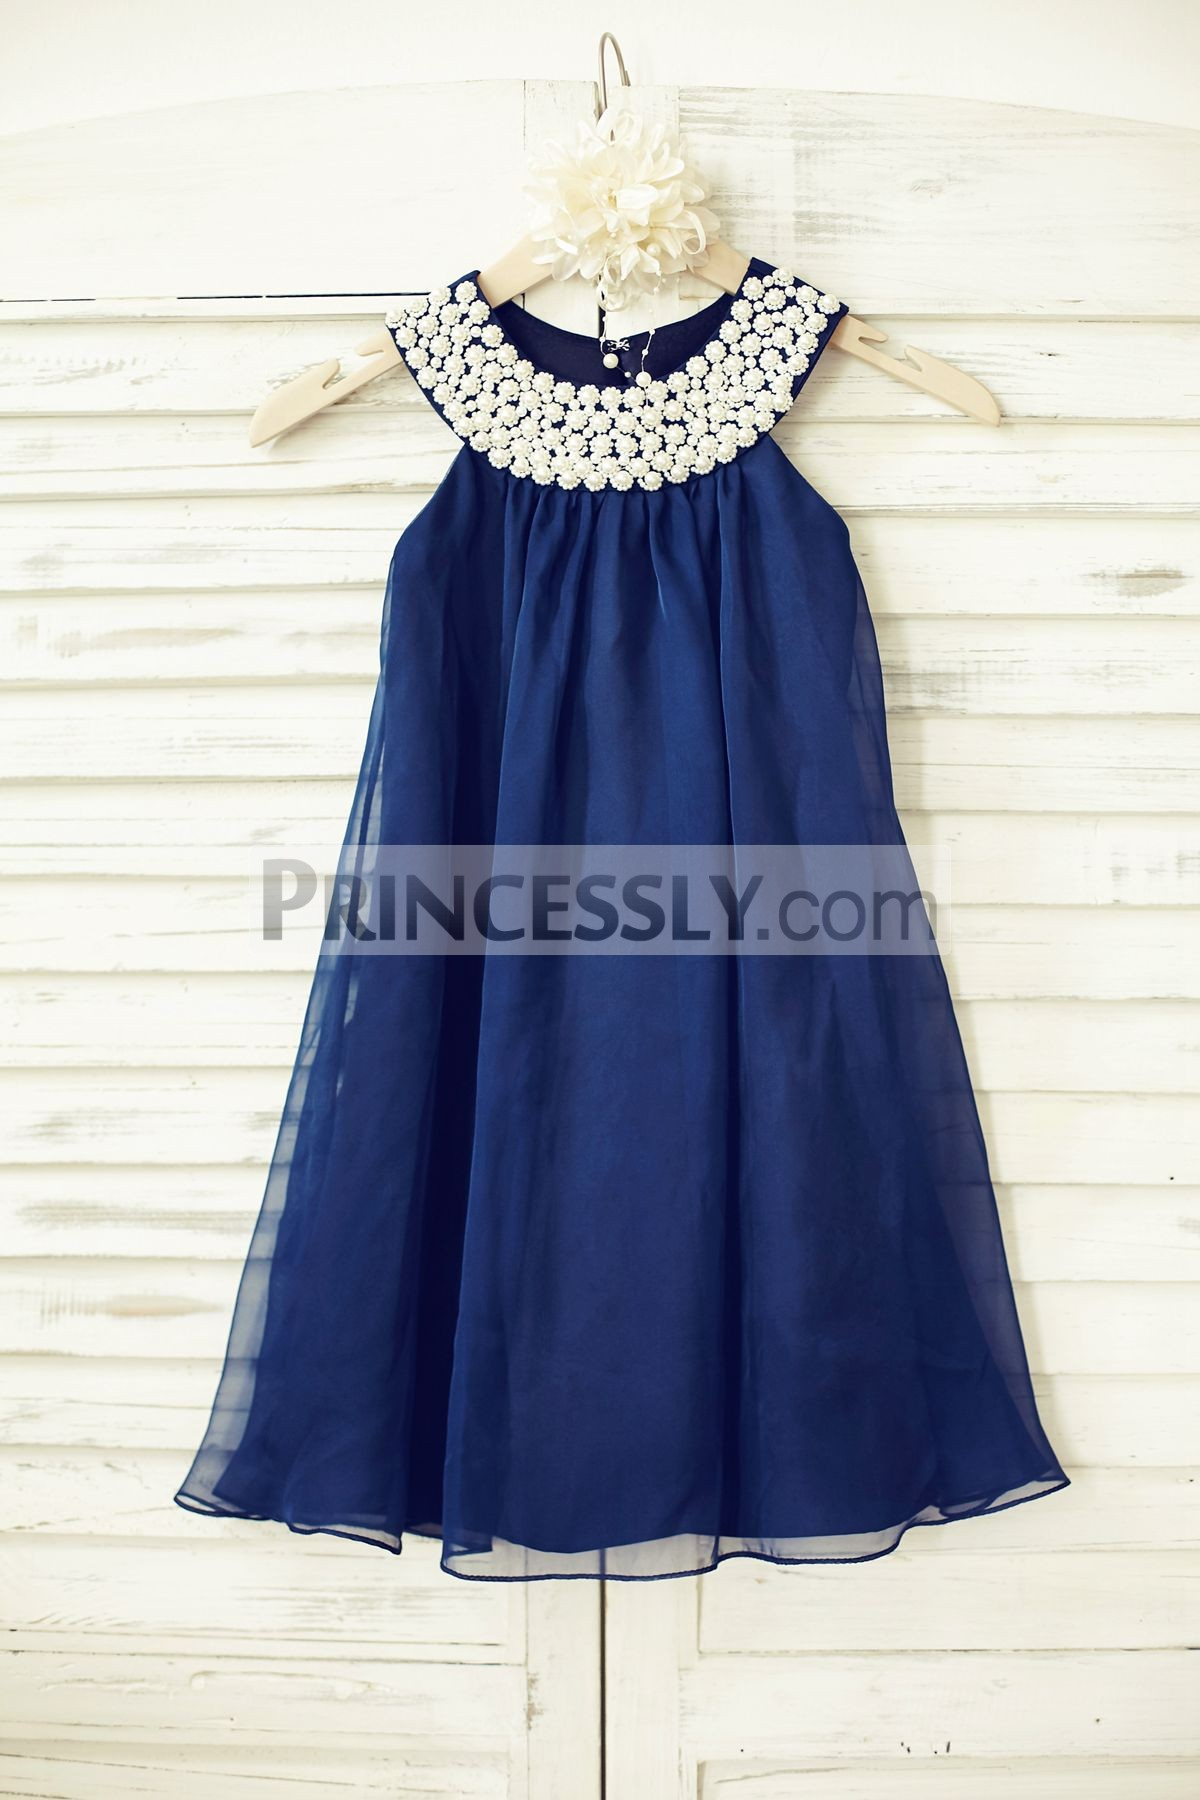 Boho Beach Pearl Beaded Neck Navy Blue Chiffon Flower Girl Dress